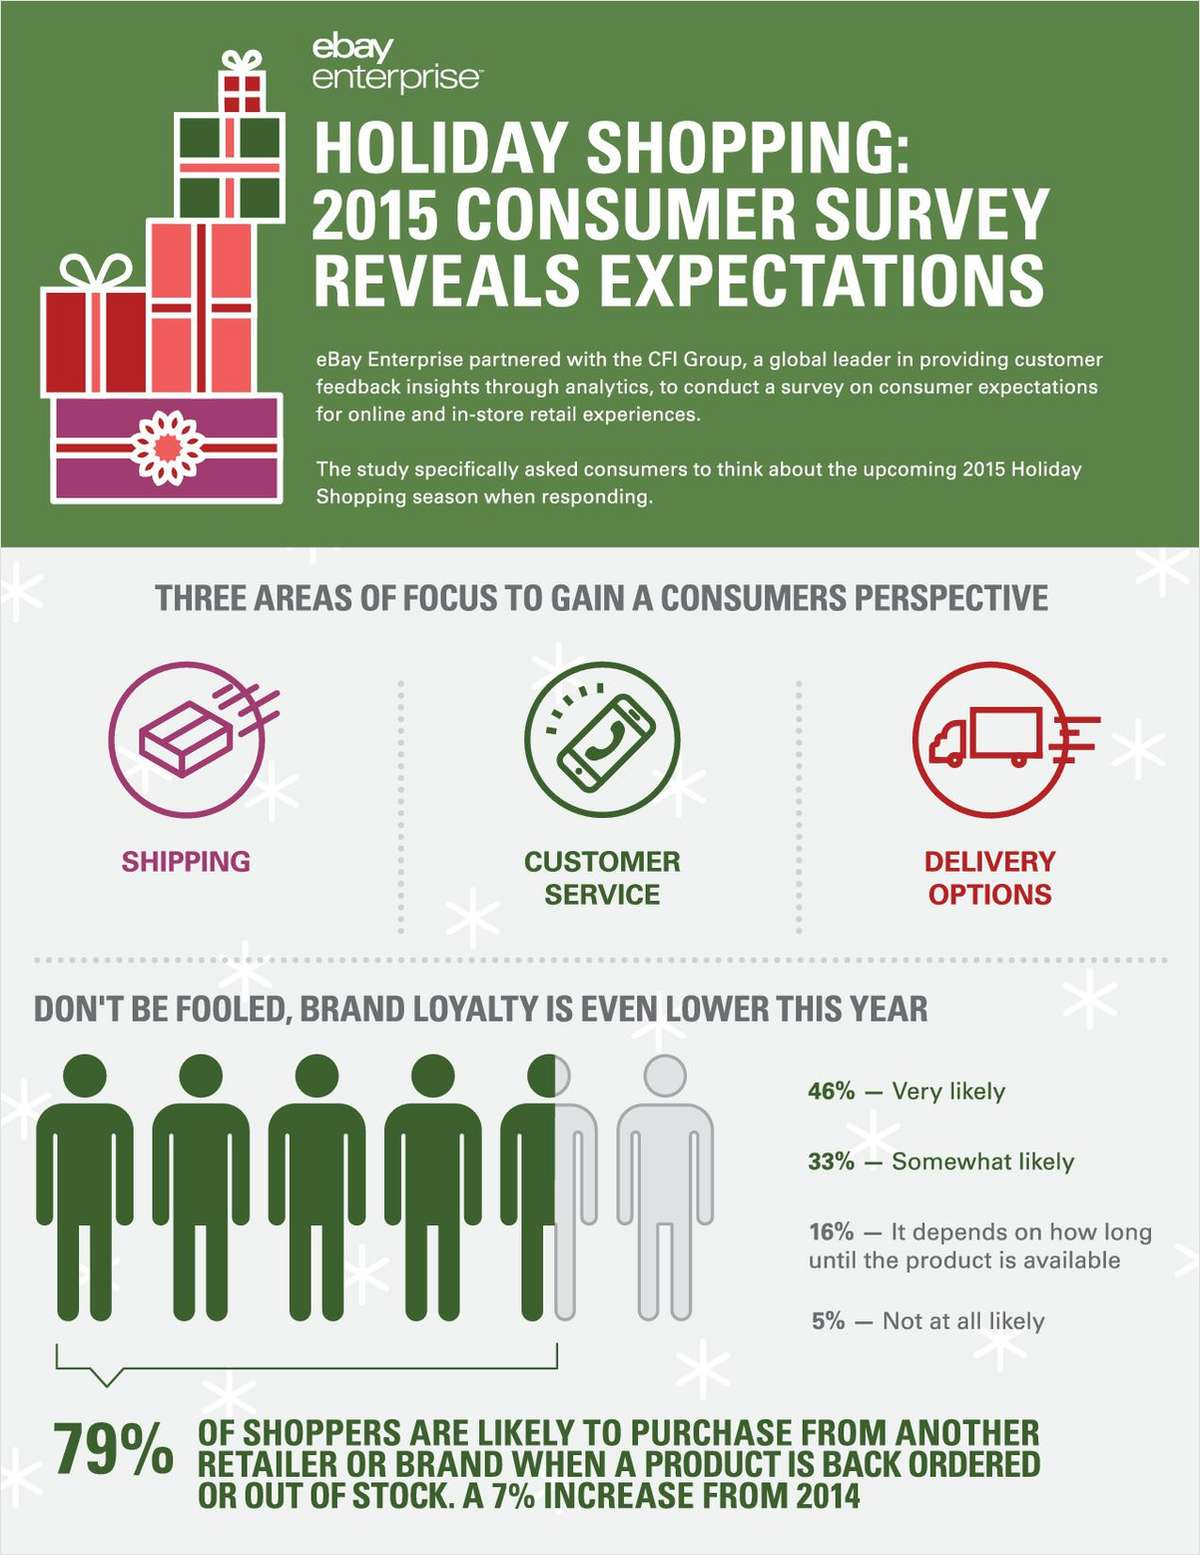 Holiday Shopping: 2015 Consumer Survey Reveals Expectations